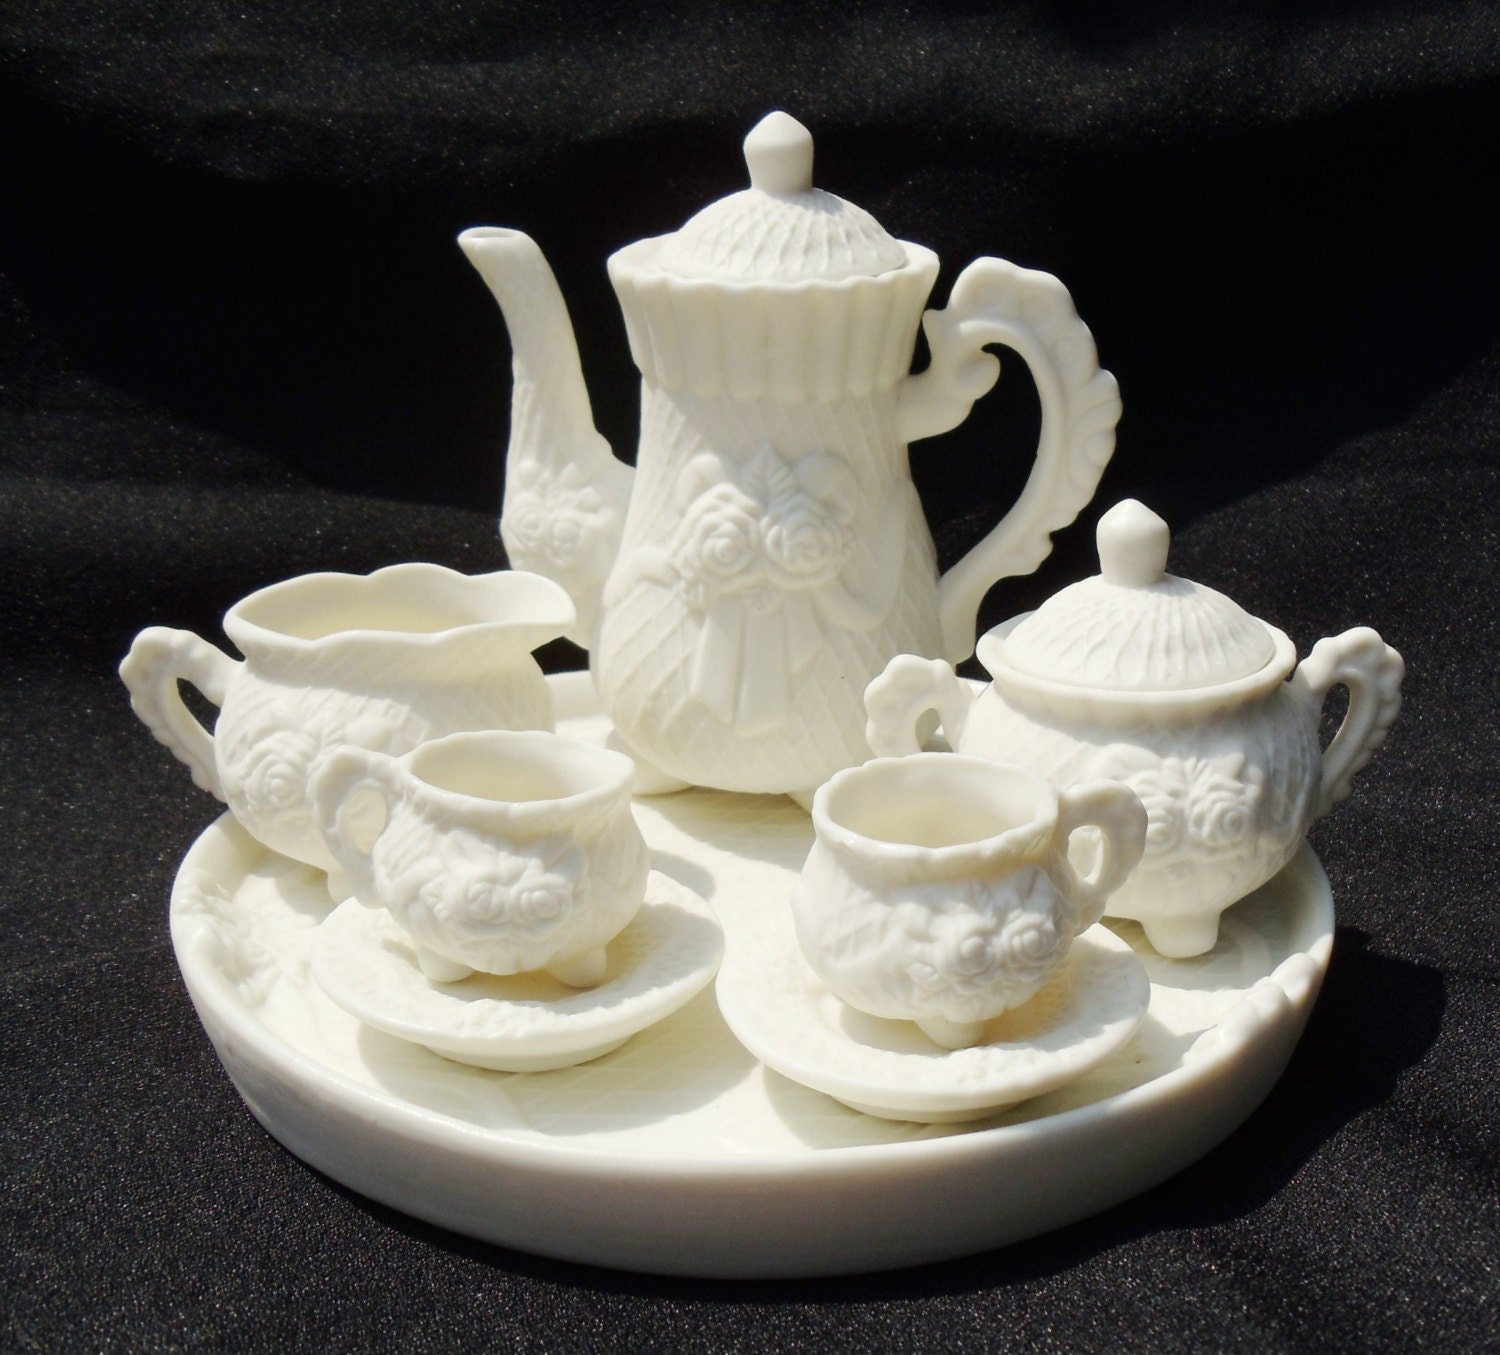 vintage miniature tea set with rose design